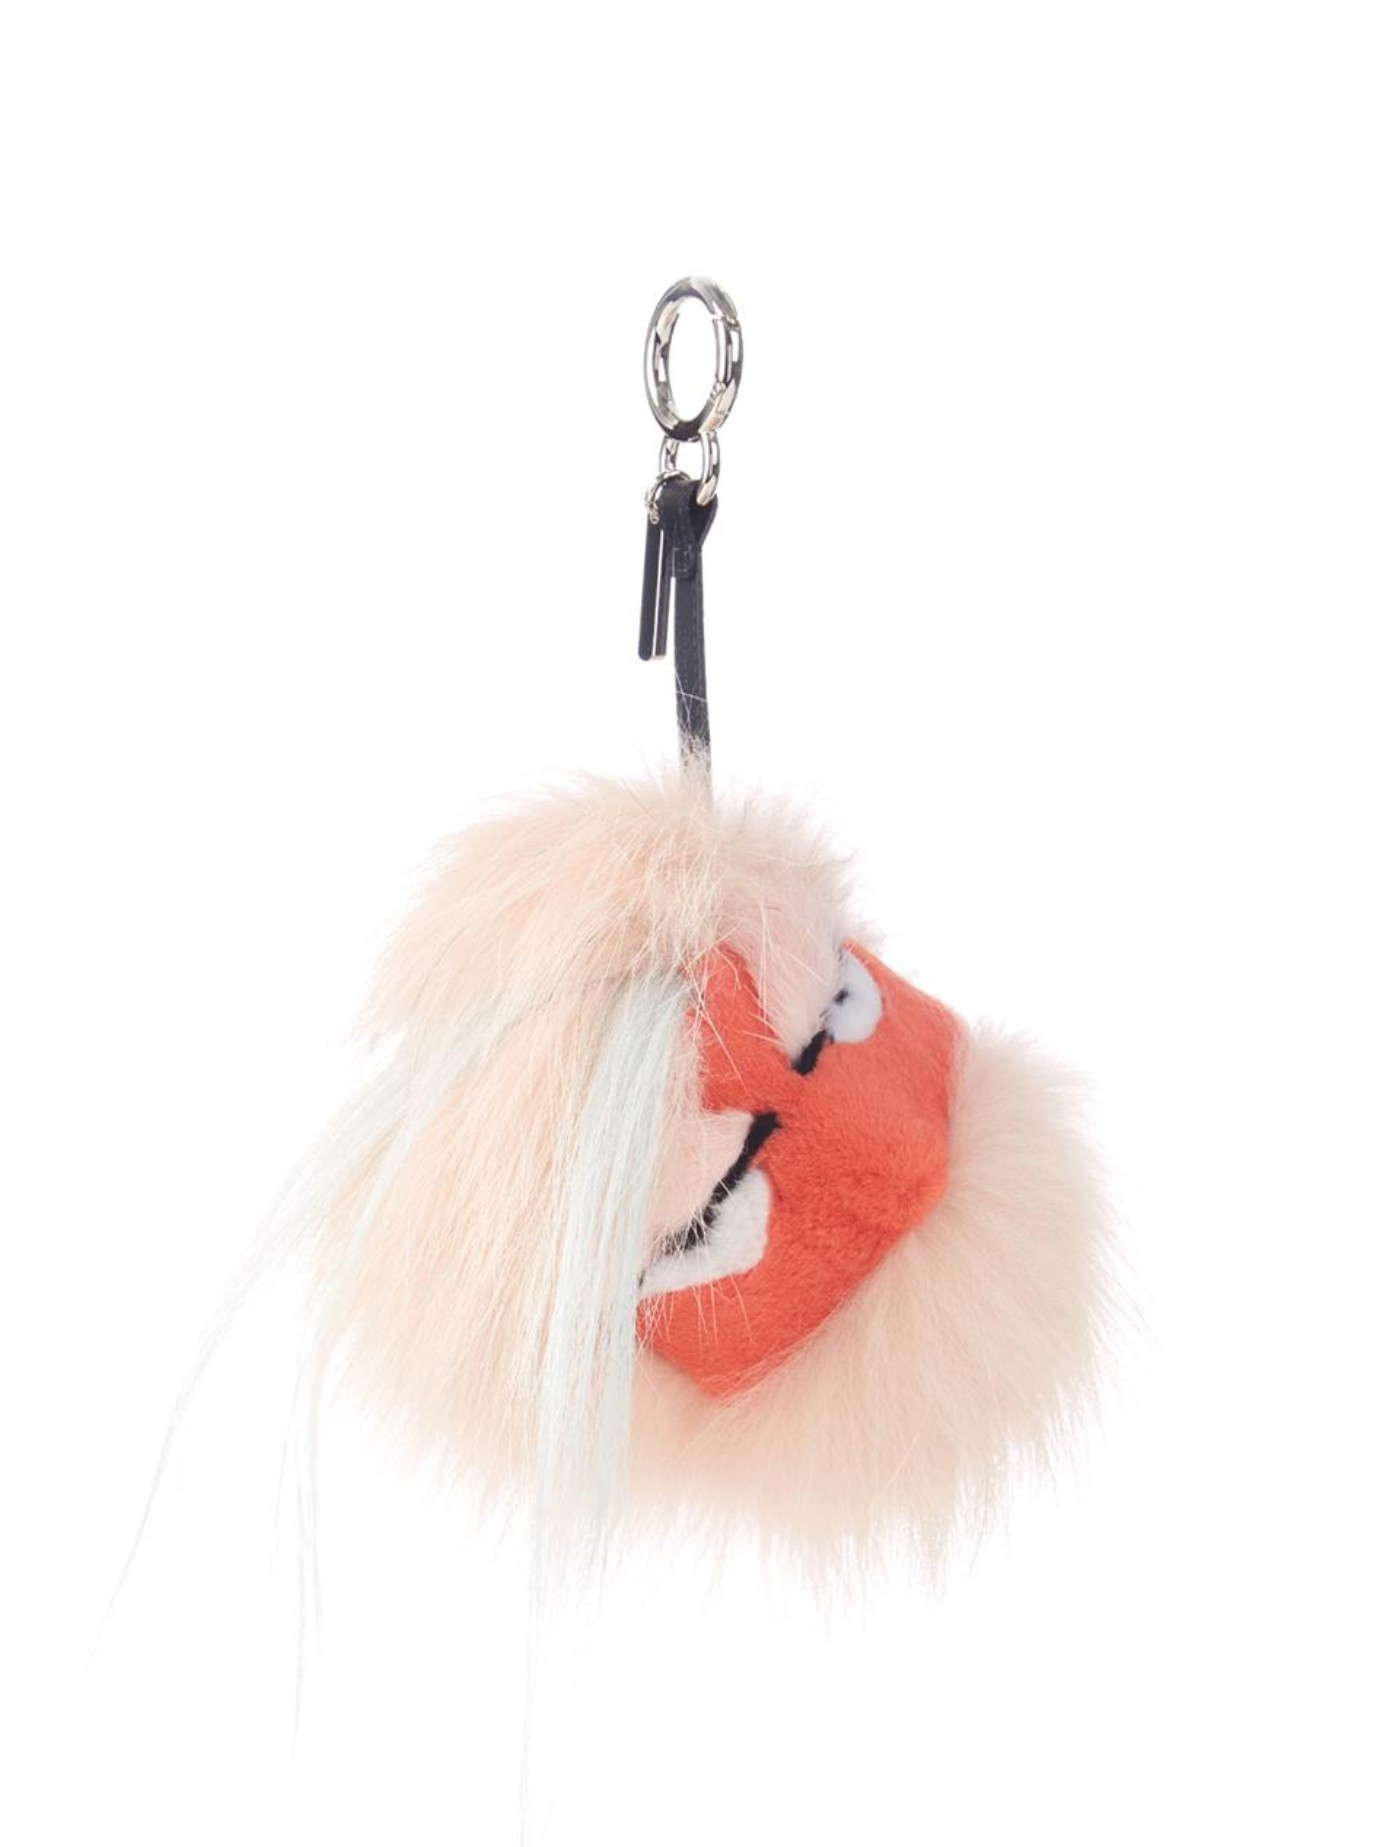 e553937f73 get pink fur charm bag bugs charm fendi 4ef88 48f14; best price gallery.  previously sold at matchesfashion womens fendi bag bugs dc8a6 32d55